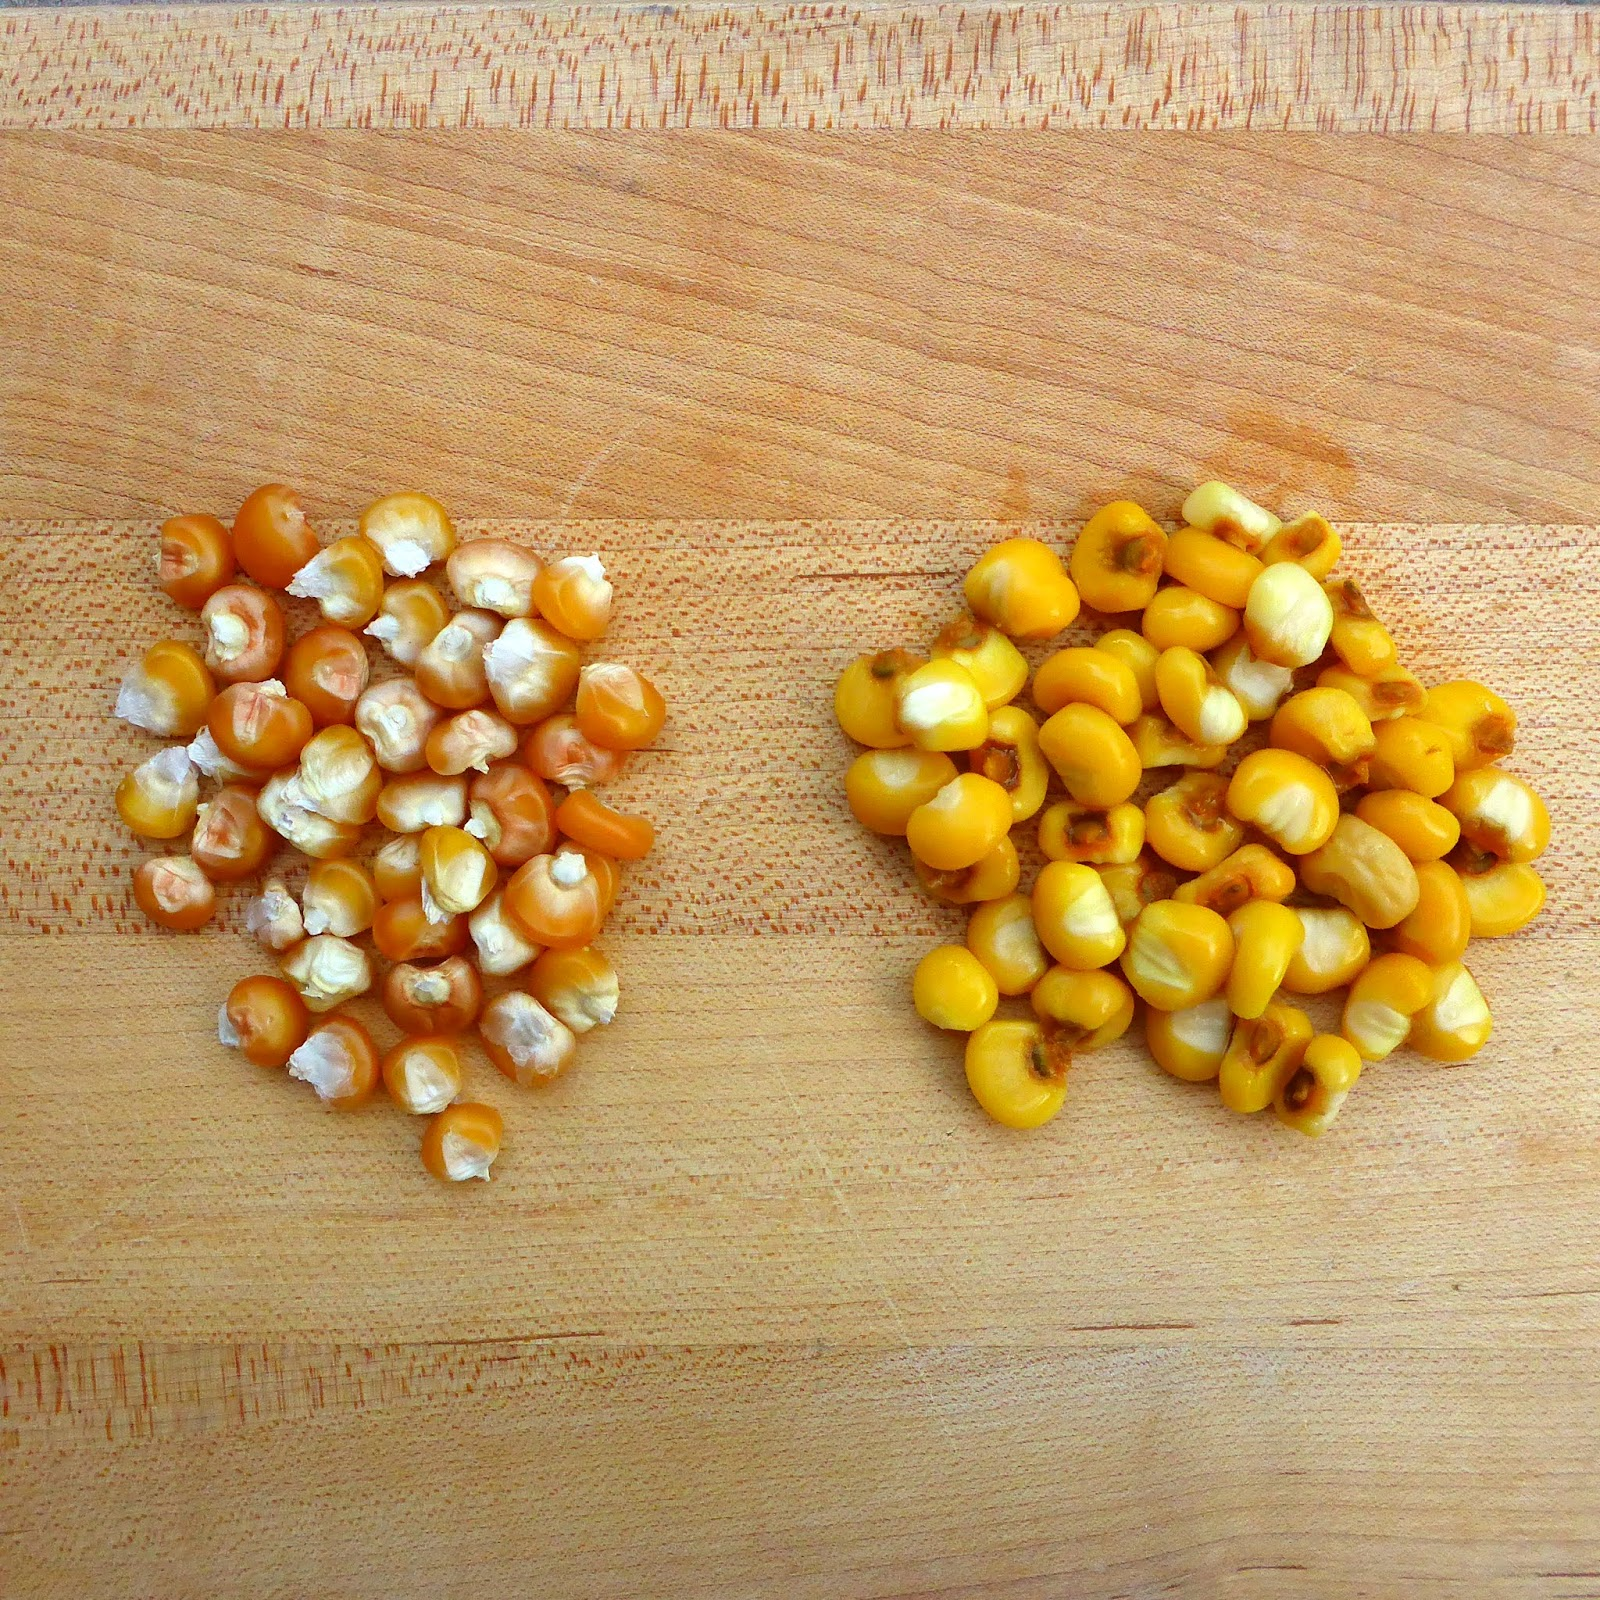 From seed to table nixtamalized corn for posole i liken the process of cooking posole to the process of cooking dry beans you start with a raw dry product soak it and then cook it albeit ccuart Choice Image